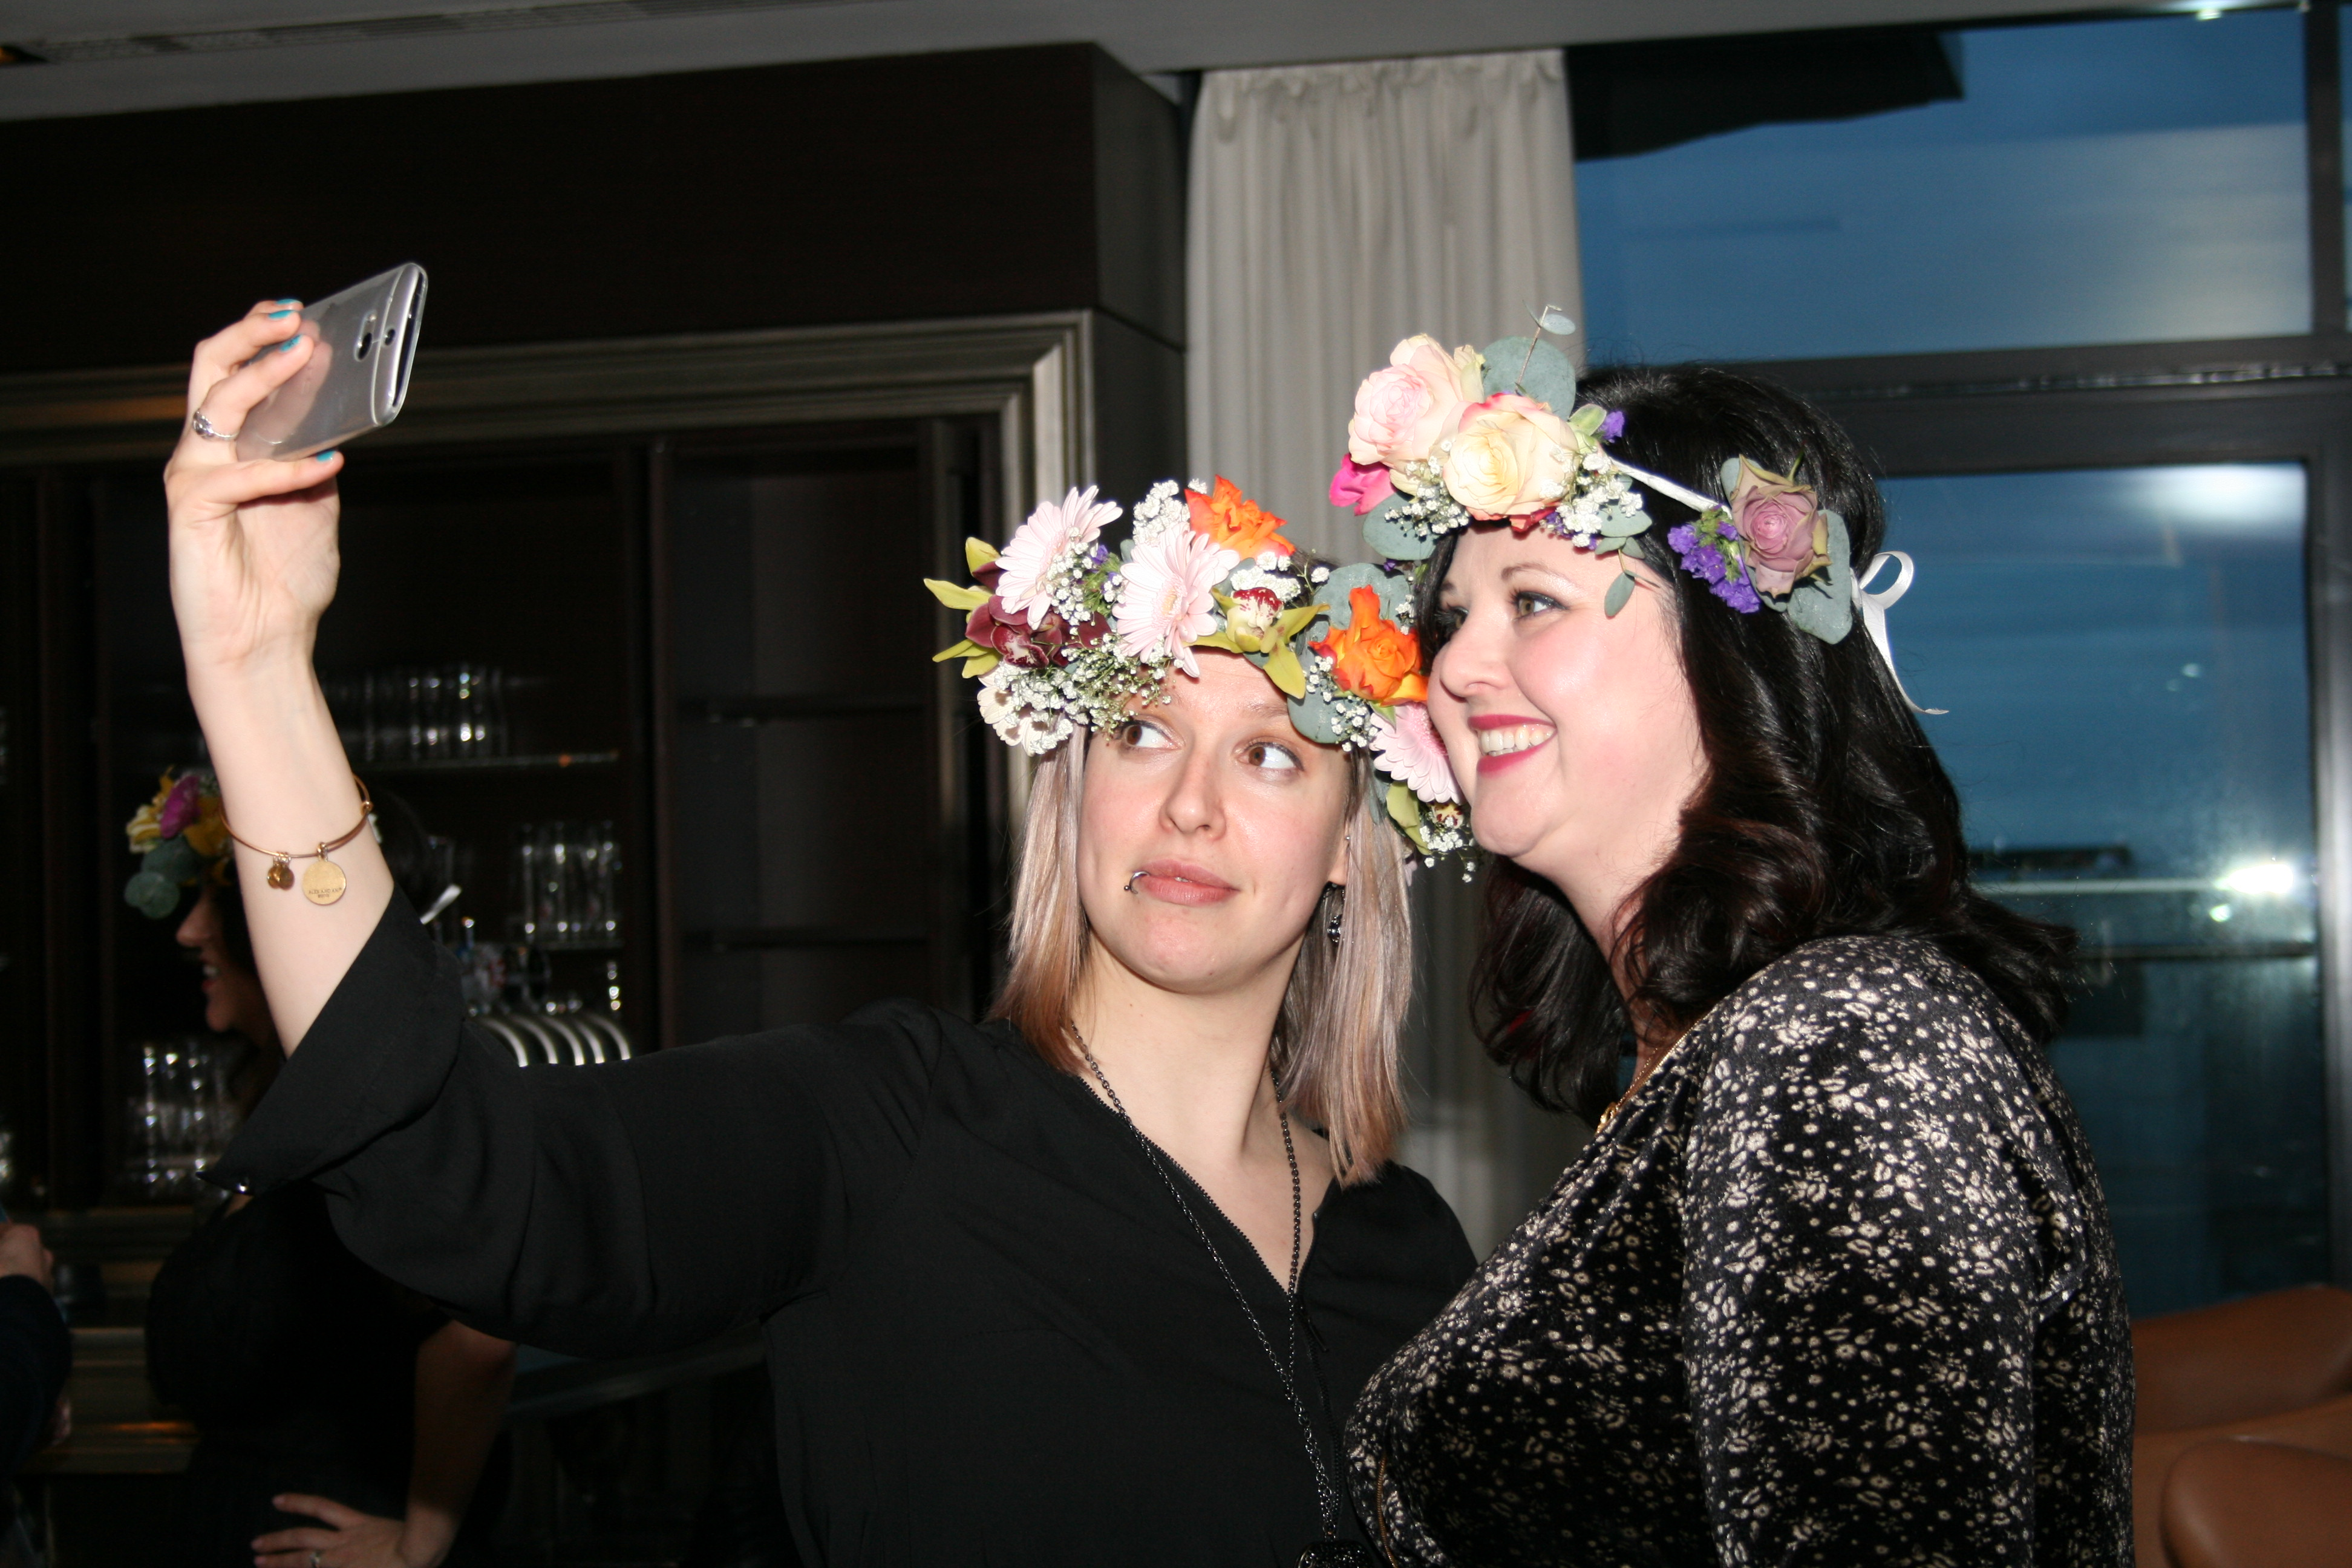 Selfie fun at flower crown party